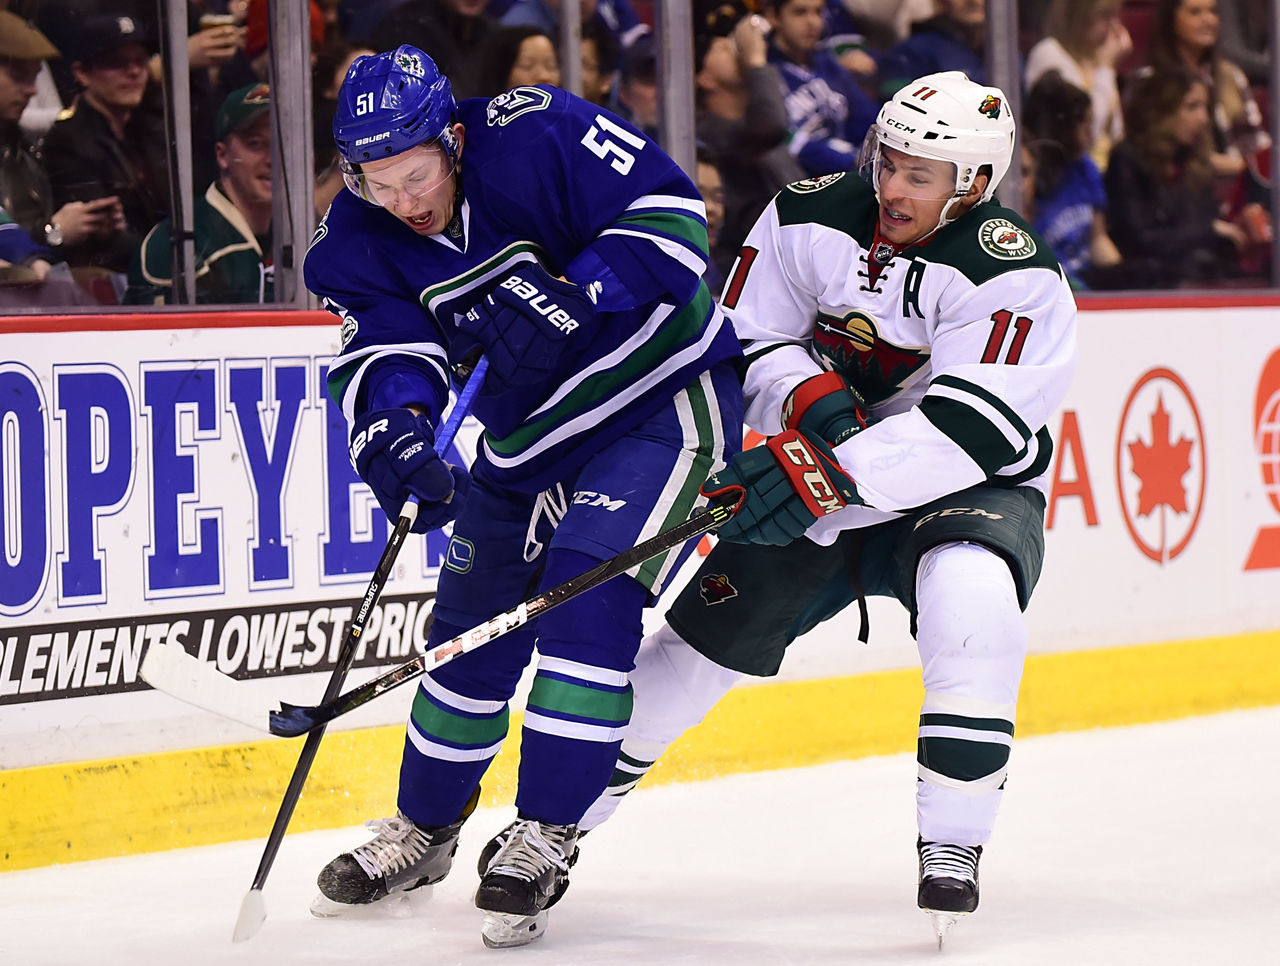 Cropped 2017 02 05t050723z 588765454 nocid rtrmadp 3 nhl minnesota wild at vancouver canucks